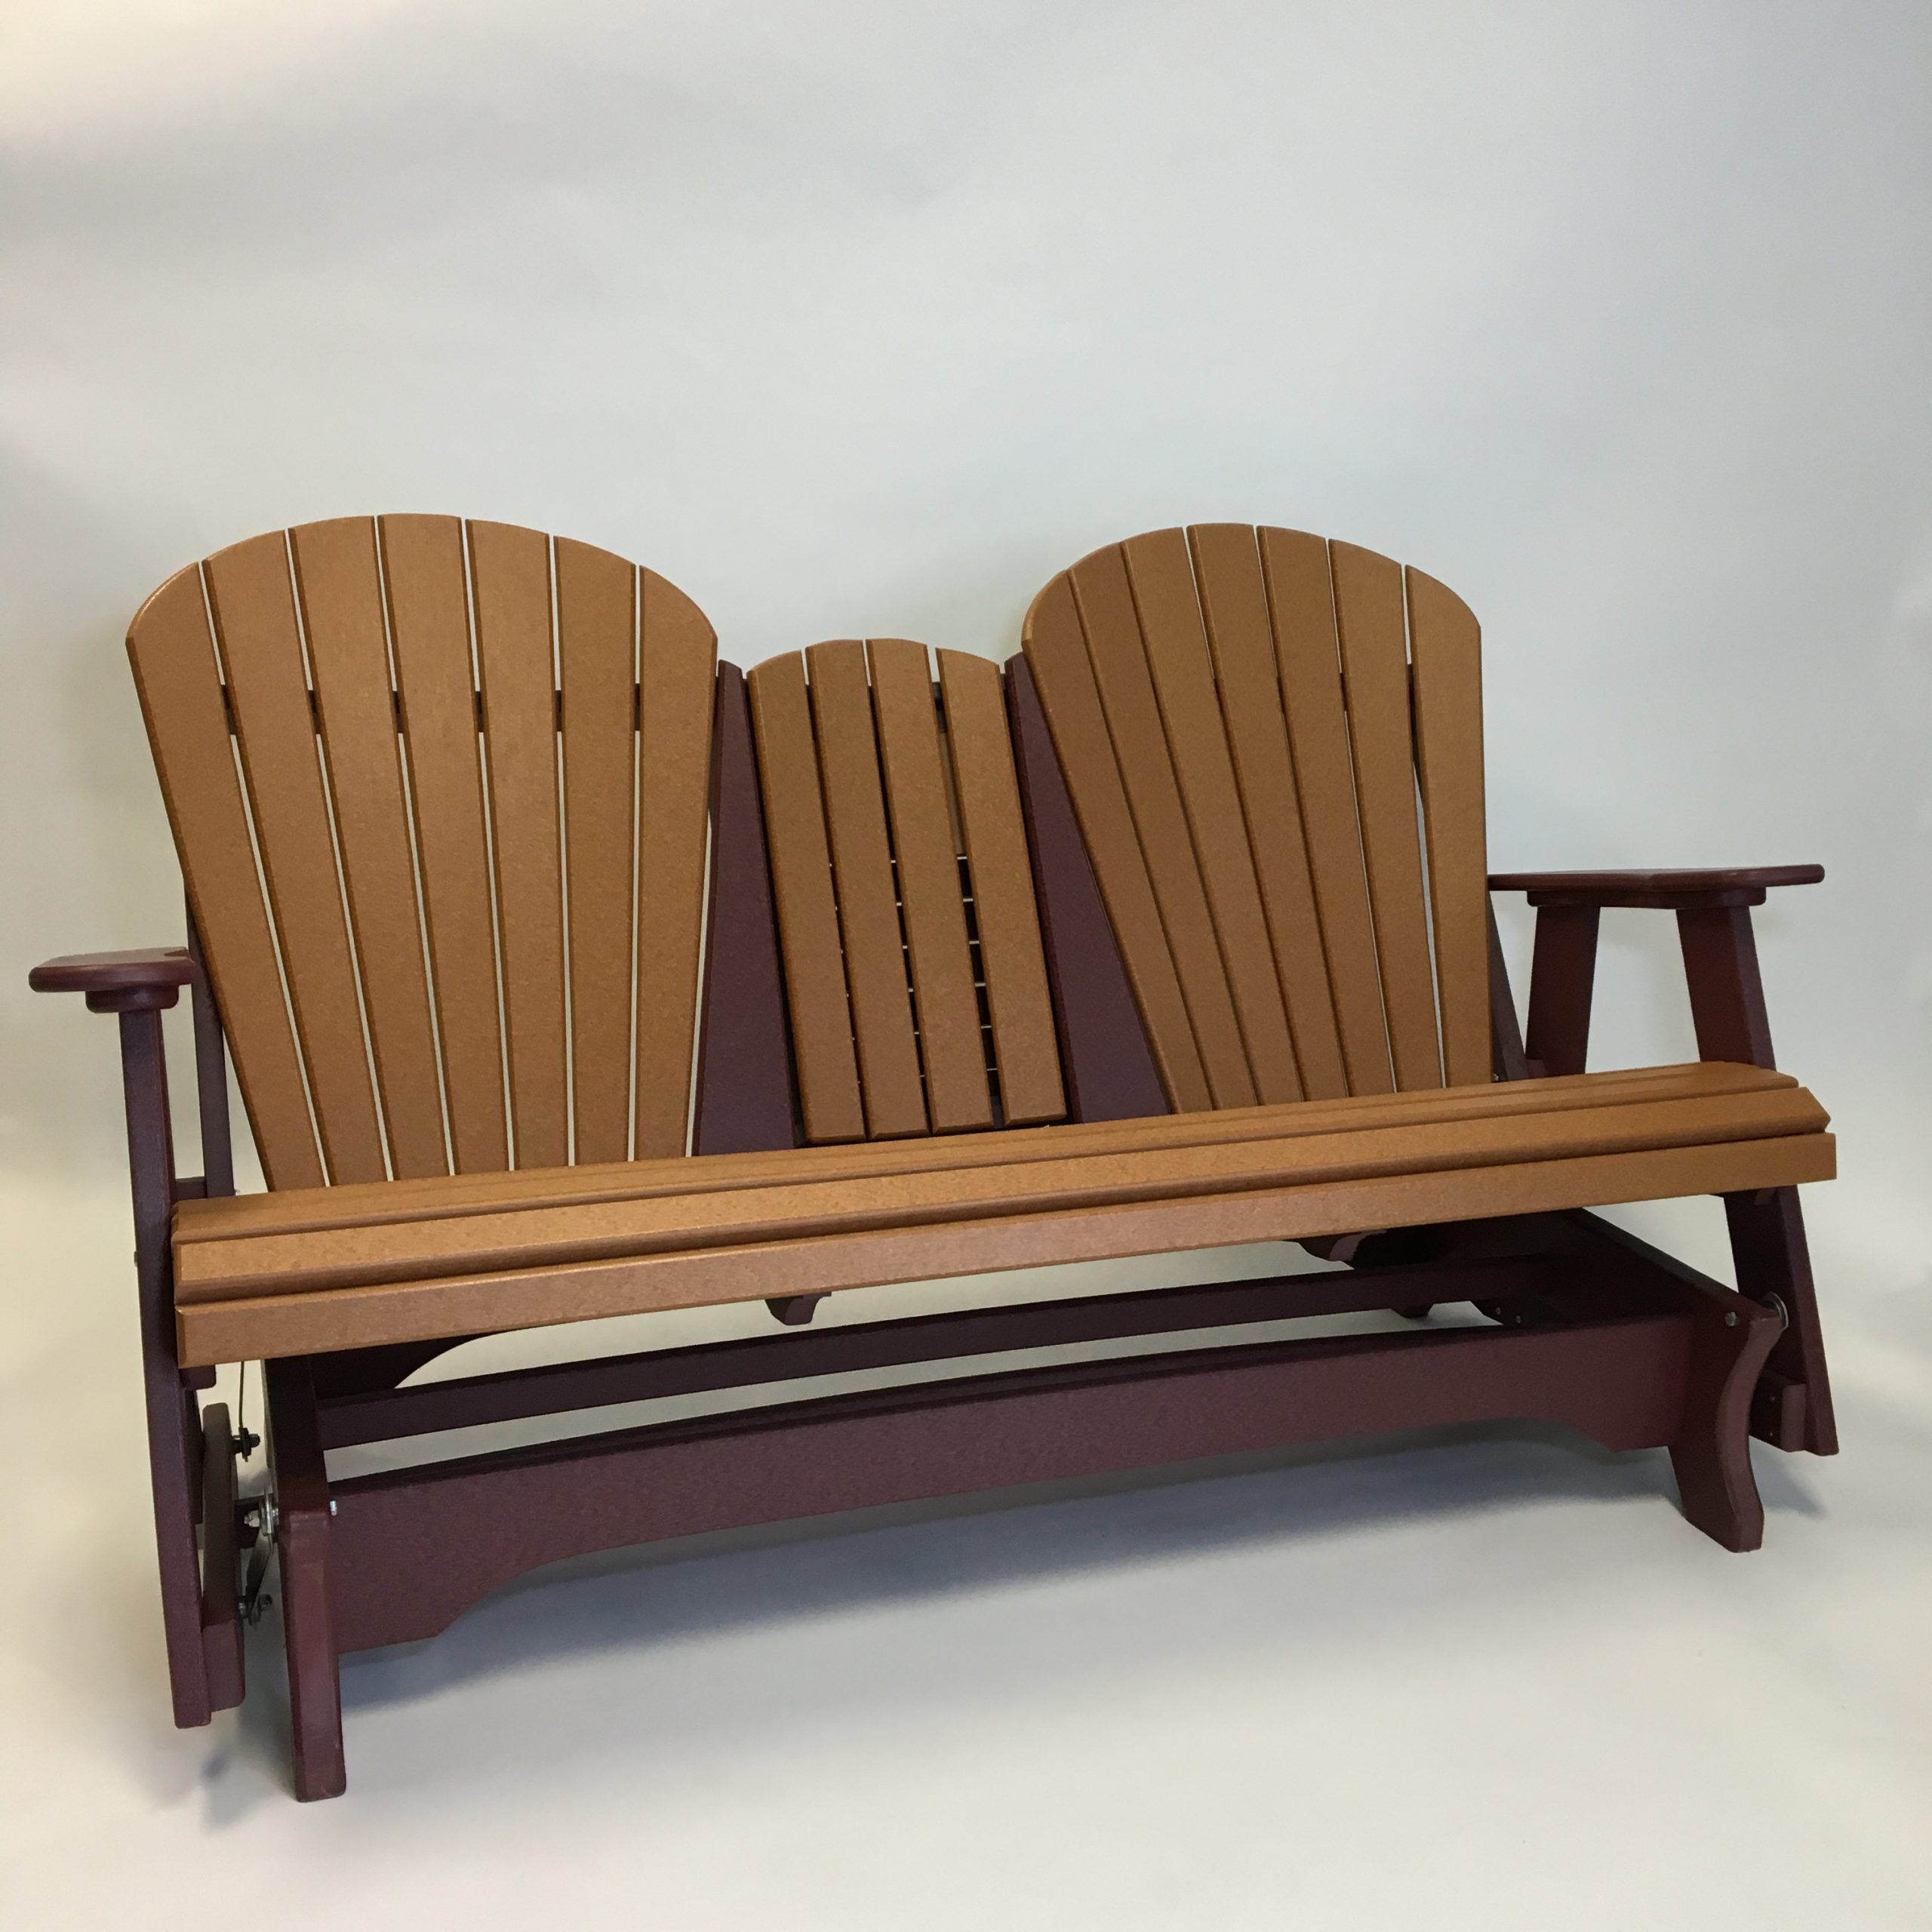 Fanback Glider Benches Pertaining To Trendy Triple Fanback Glider – The Amish Craftsmen Guild Ii (Gallery 10 of 30)